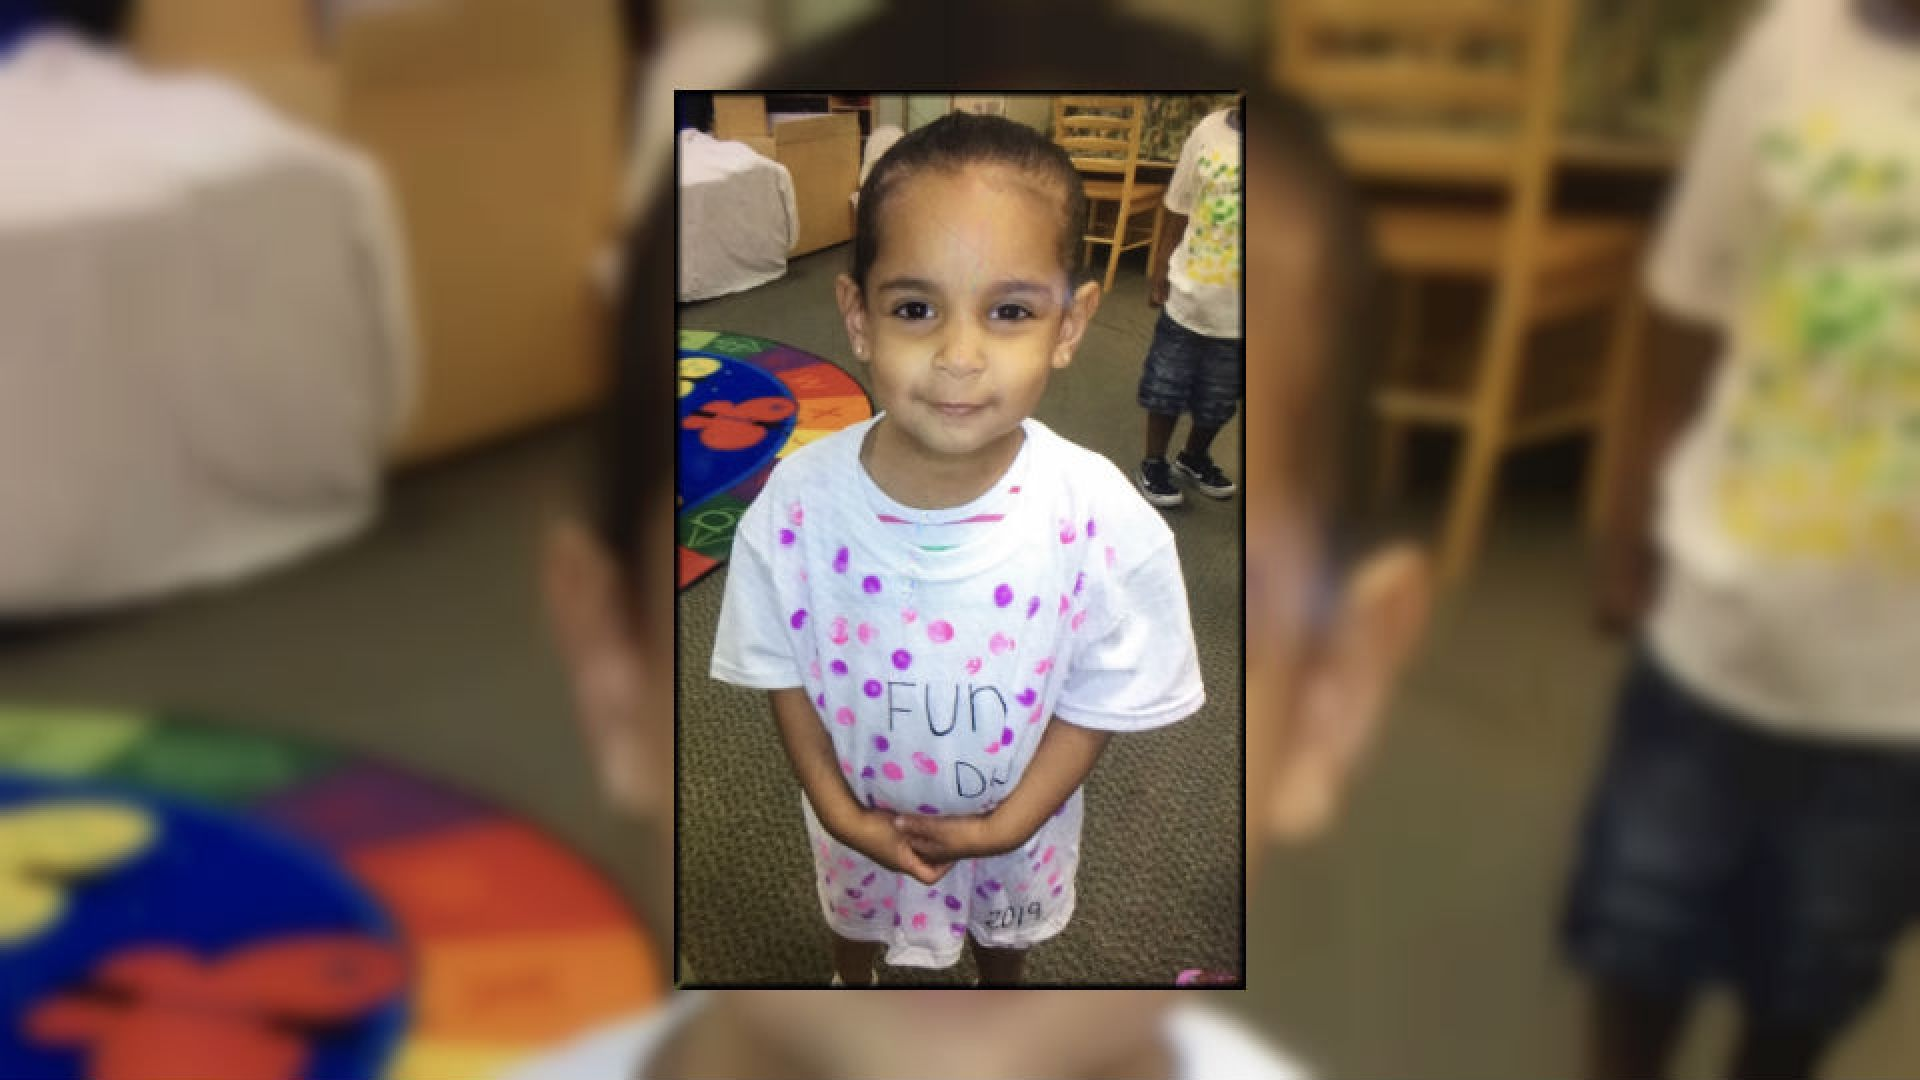 Benefit for 3-year-old girl who died at Ontario park